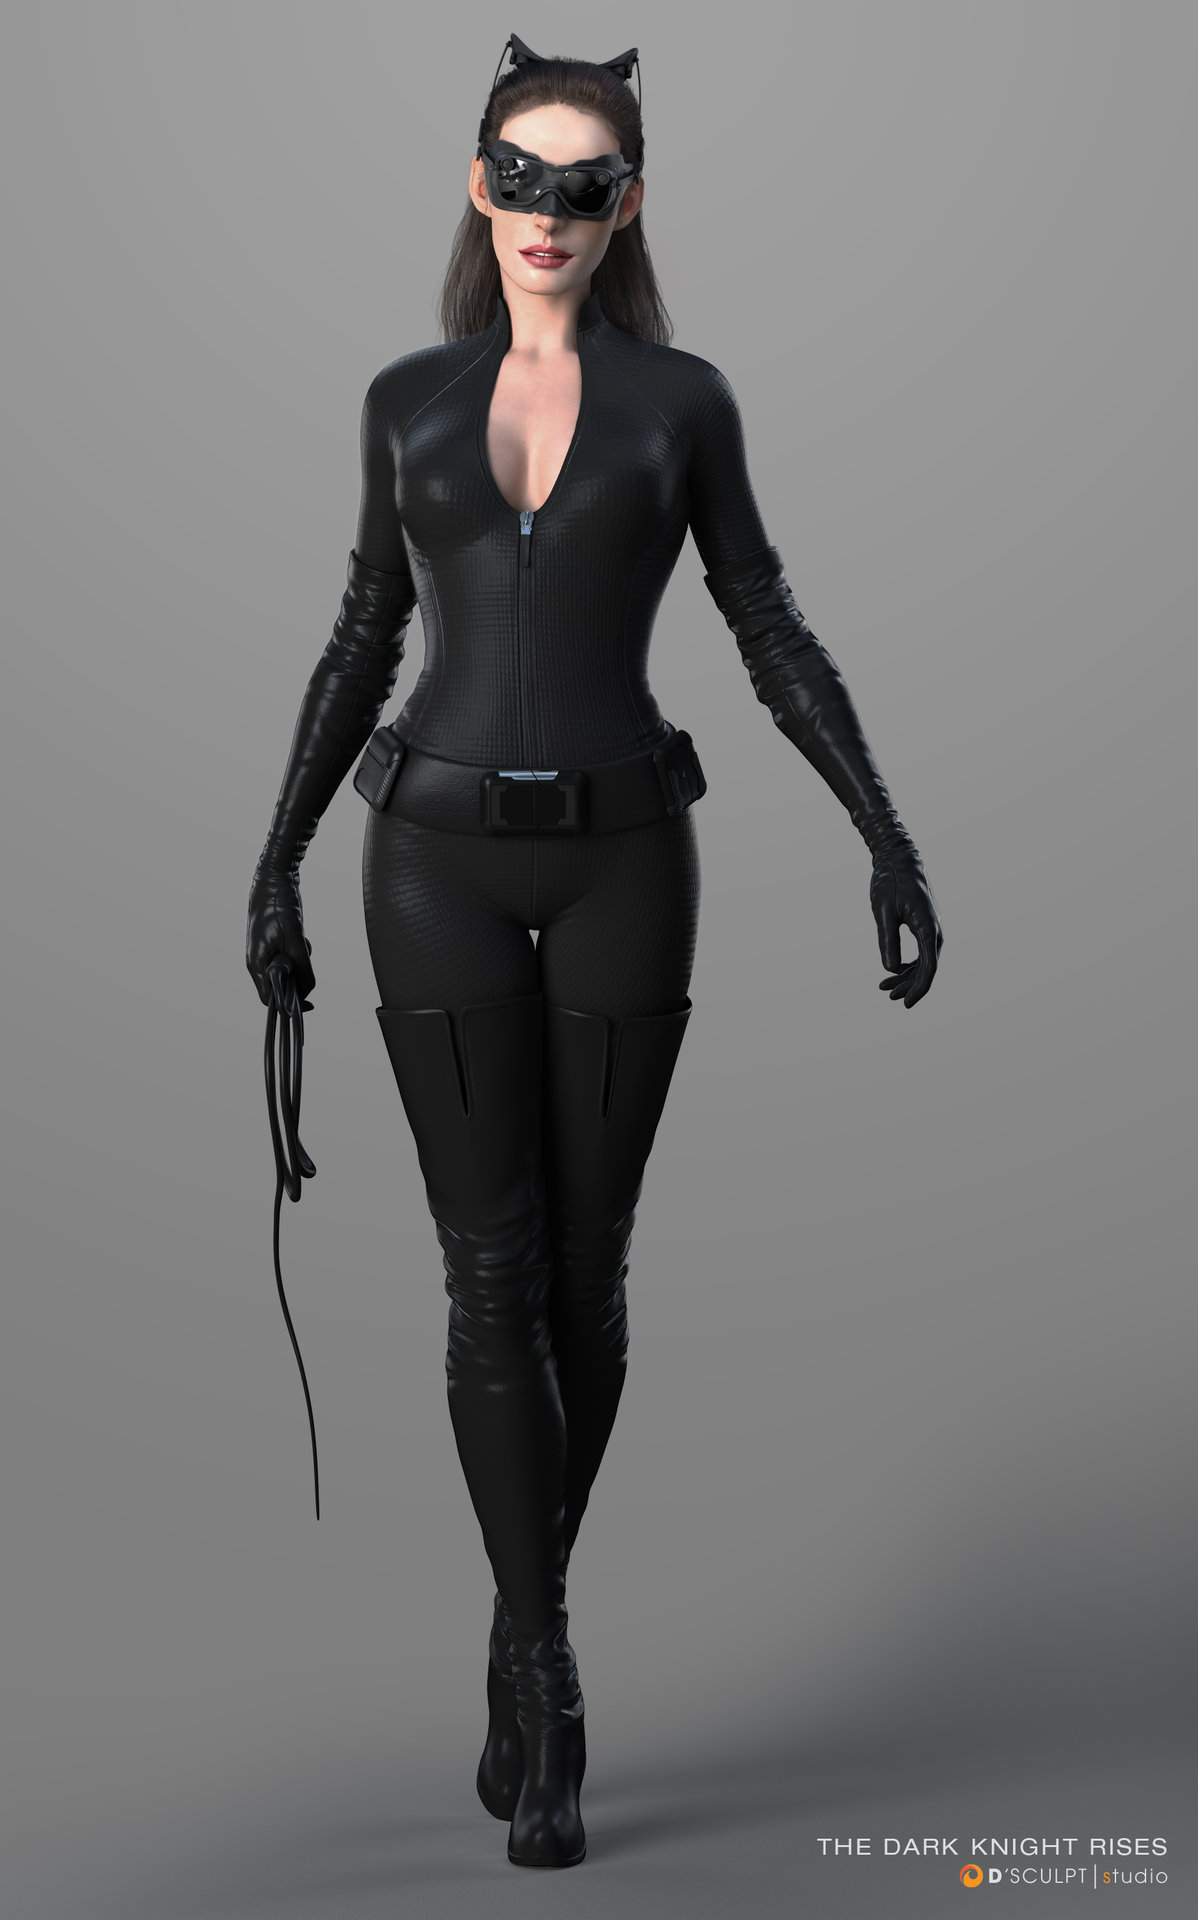 Think, dark knight rises anne hathaway as catwoman apologise, but